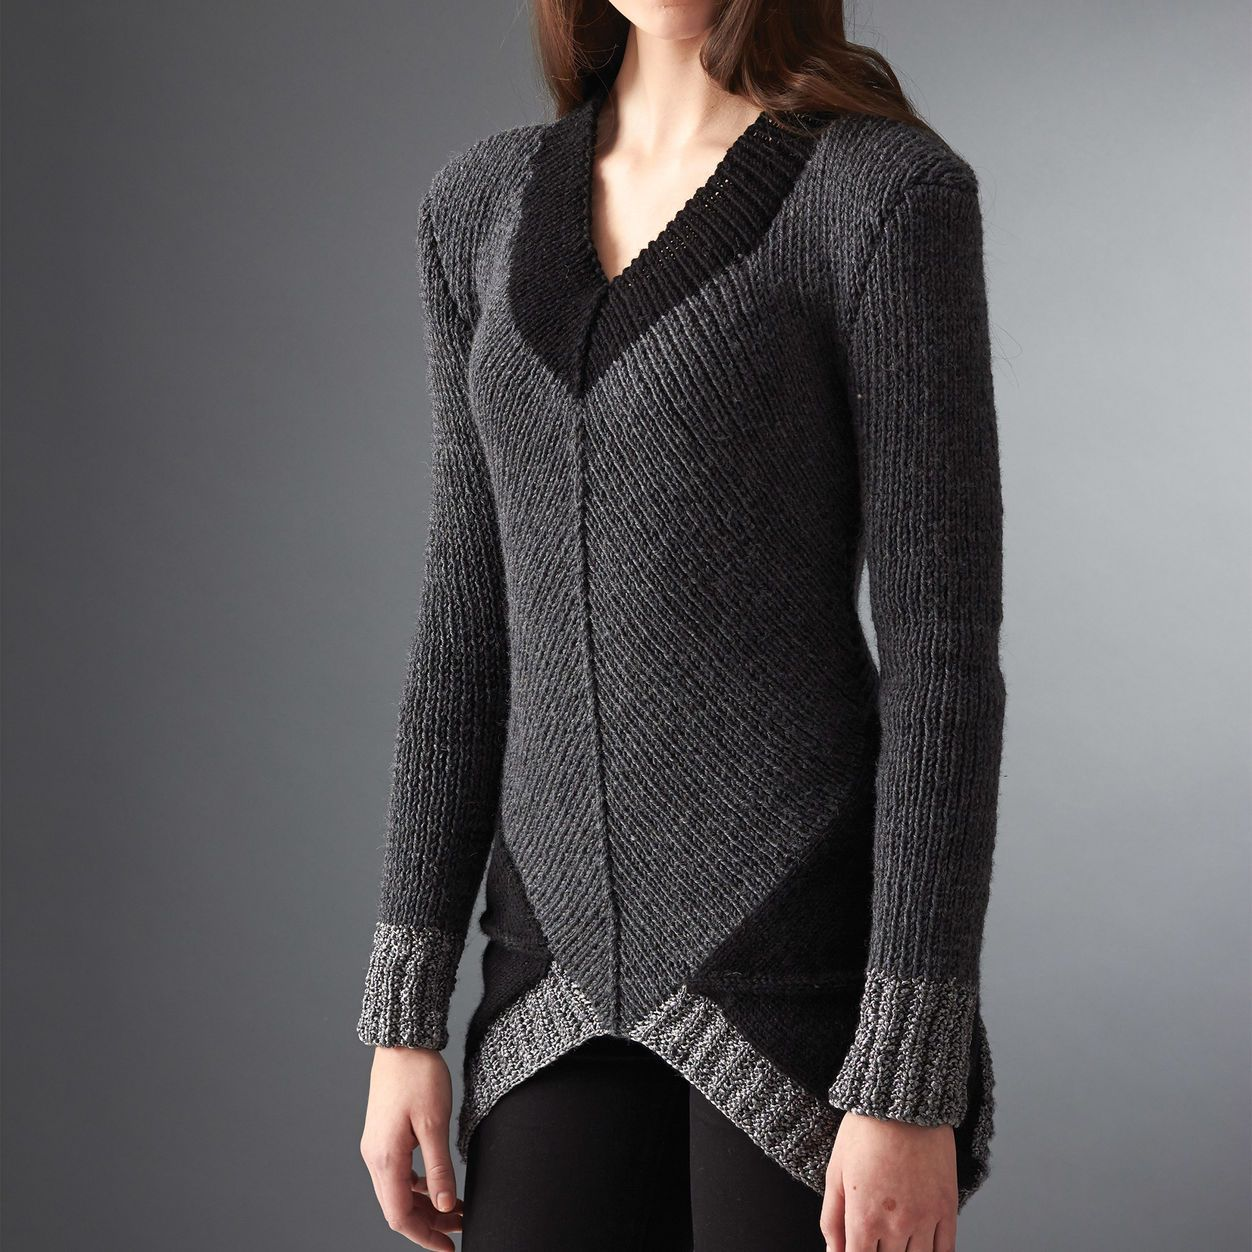 Patons District 12 Sweater, XS/S   Easy sweater knitting ...